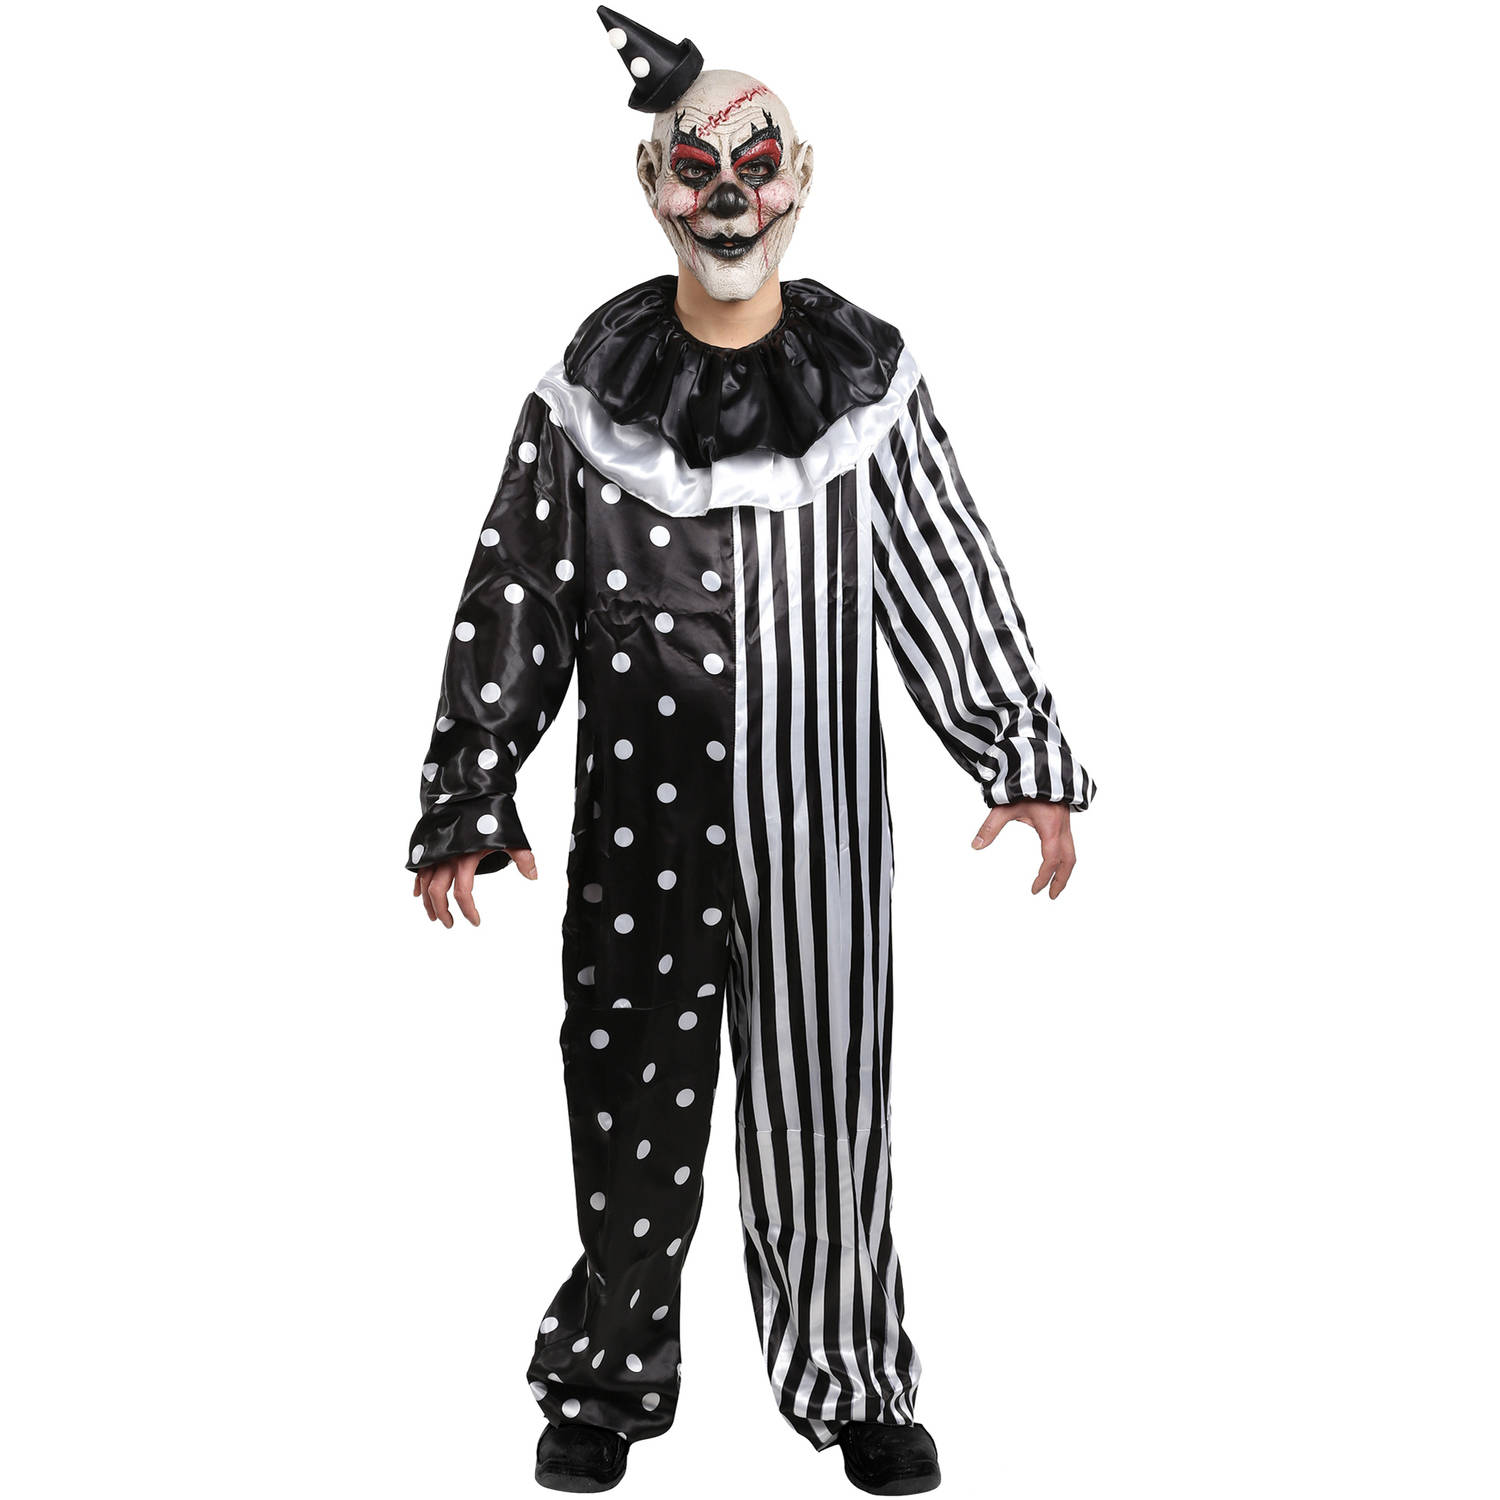 kill joy clown costume adult halloween costume - walmart